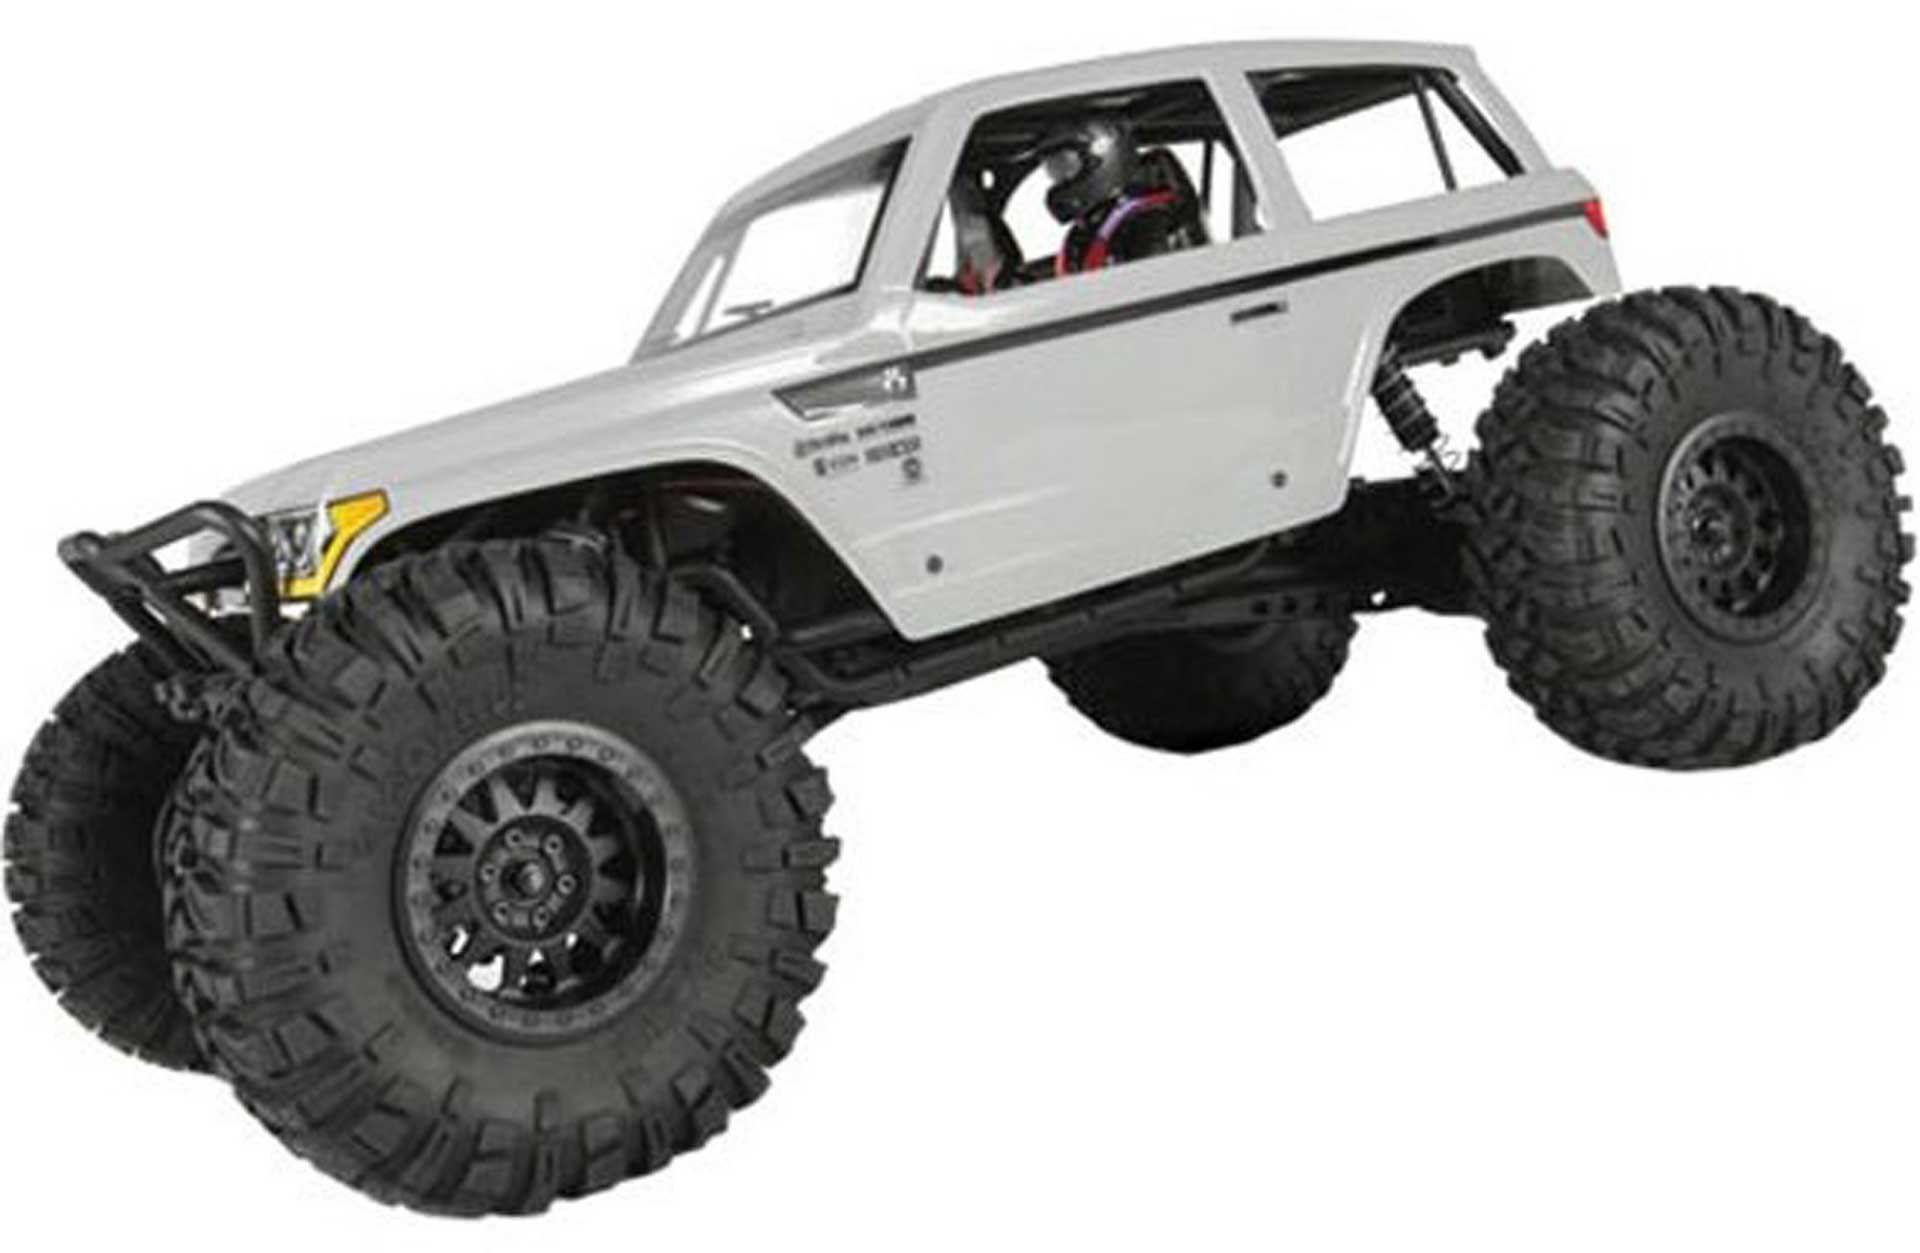 AXIAL WRAITH SPAWN SCALE ROCK RACER 1/10 ARTR 4WD